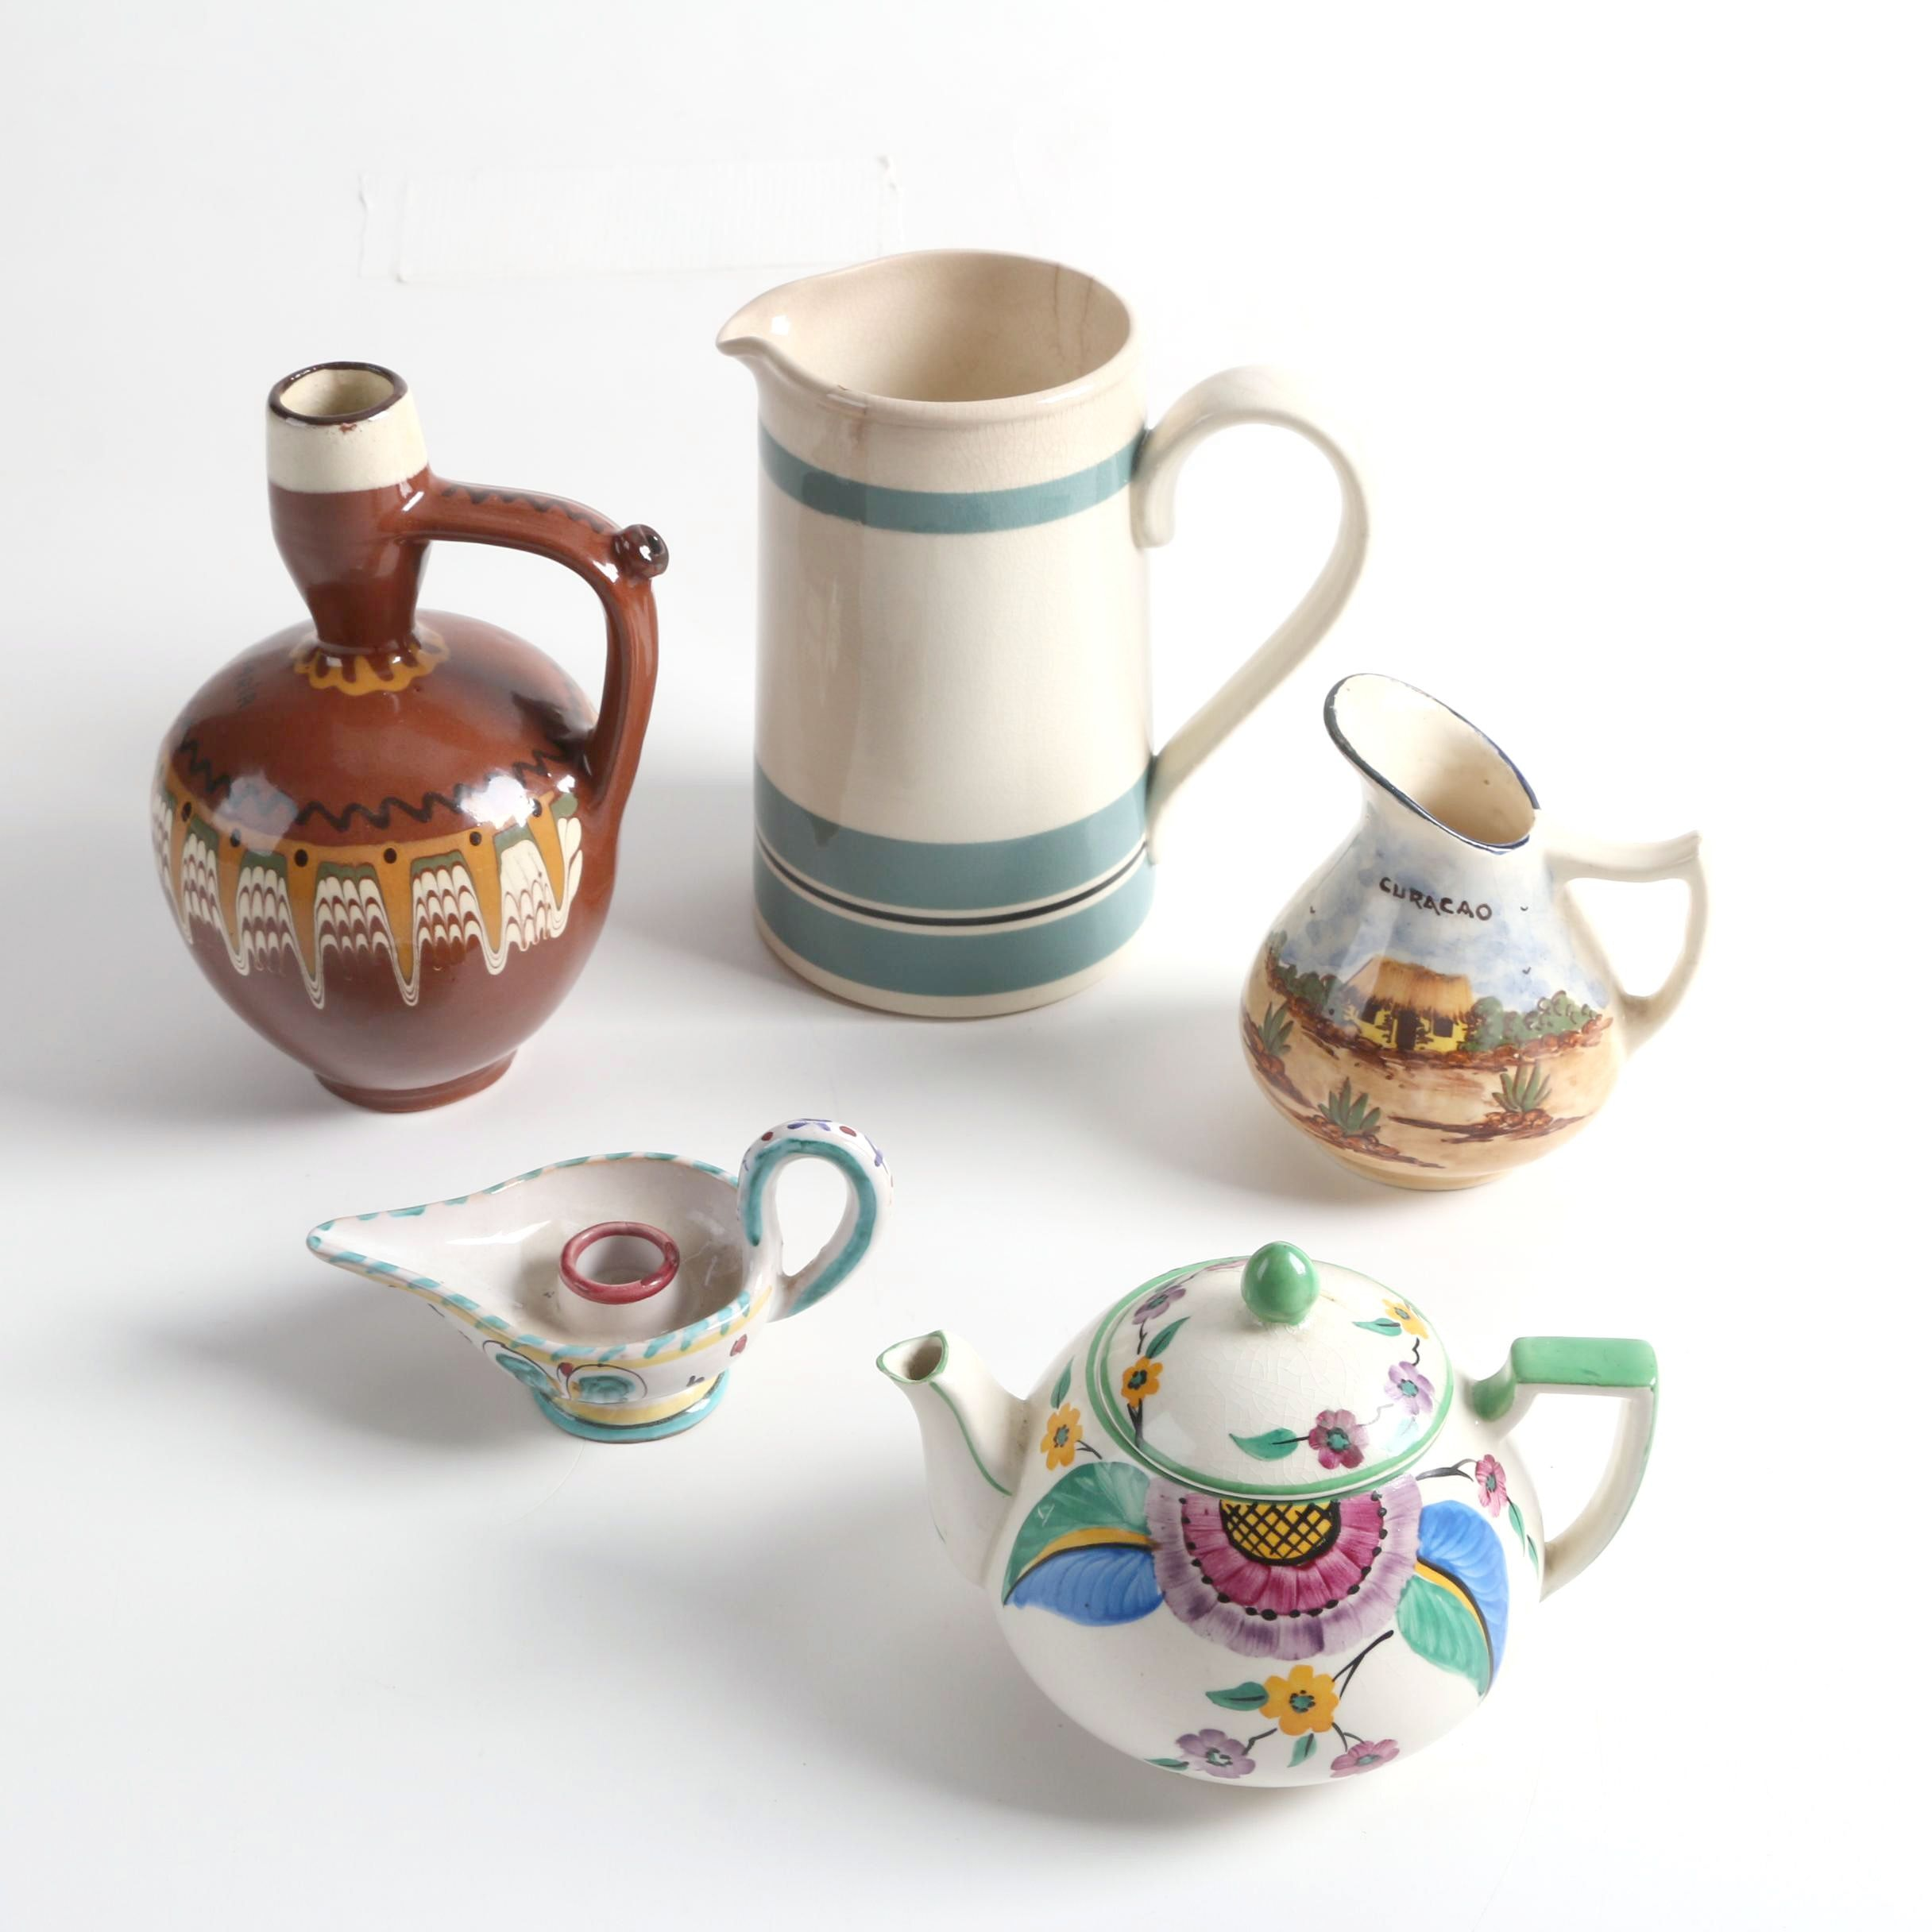 Crown Devon with Sadler and Hand-Painted Pottery Tableware